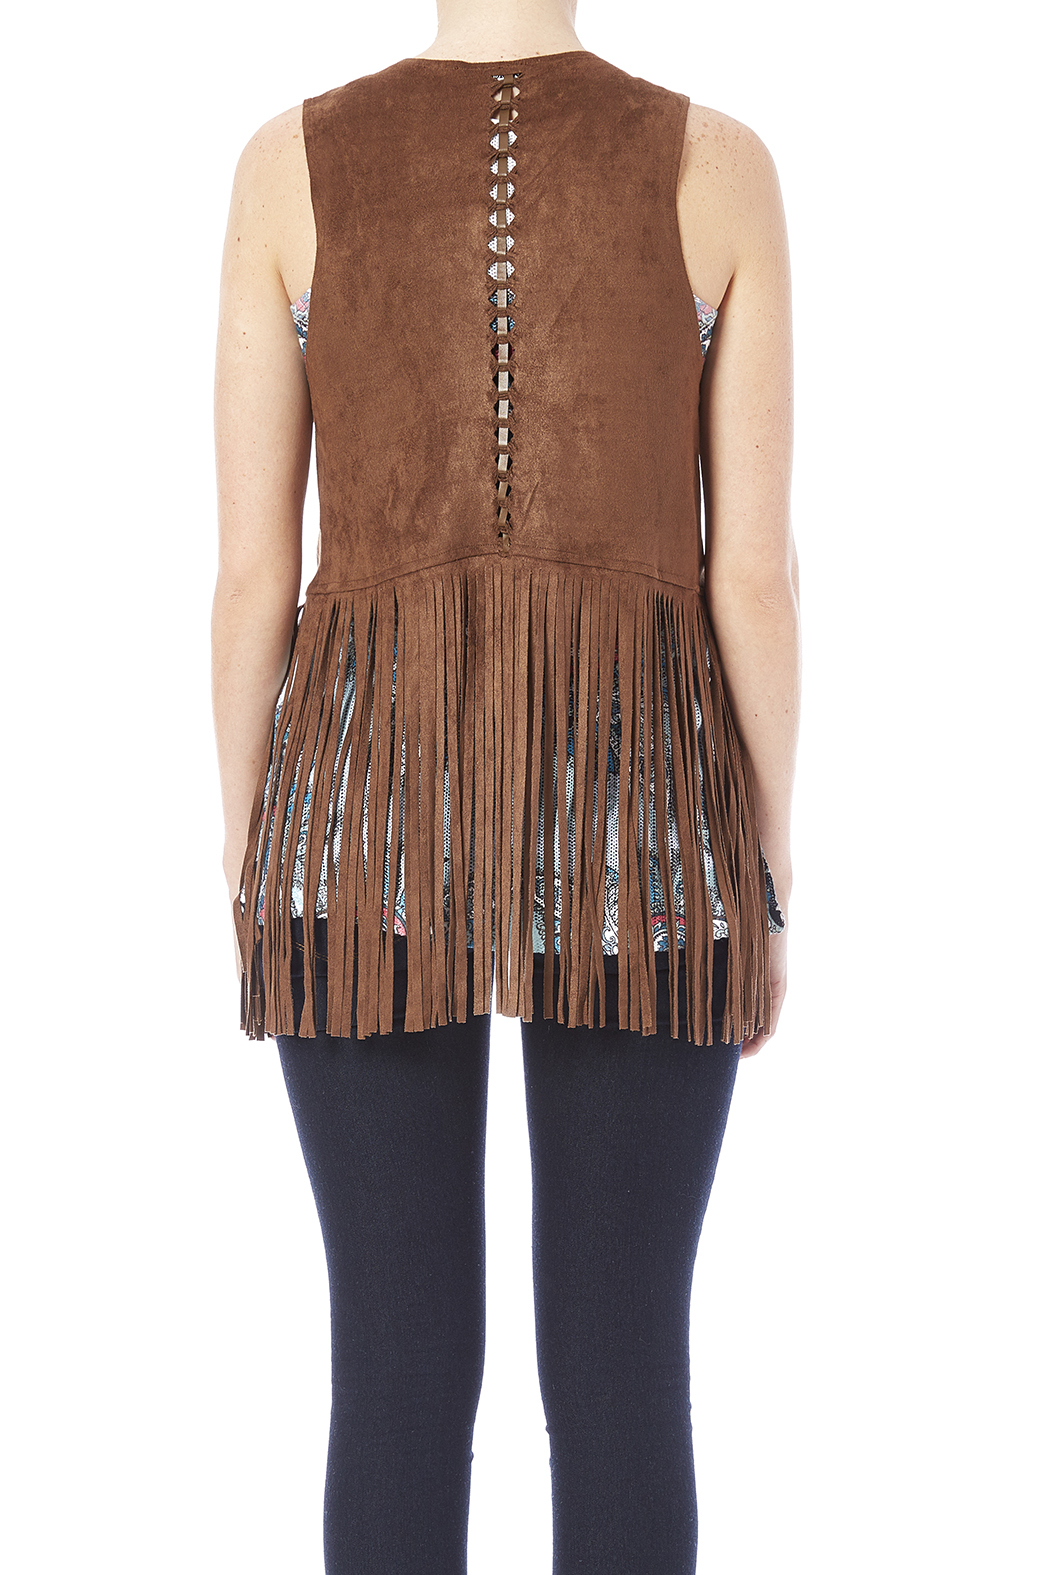 Maitai Faux Suede Fringe Vest From Honolulu By Cookie S Clothing Co Shoptiques